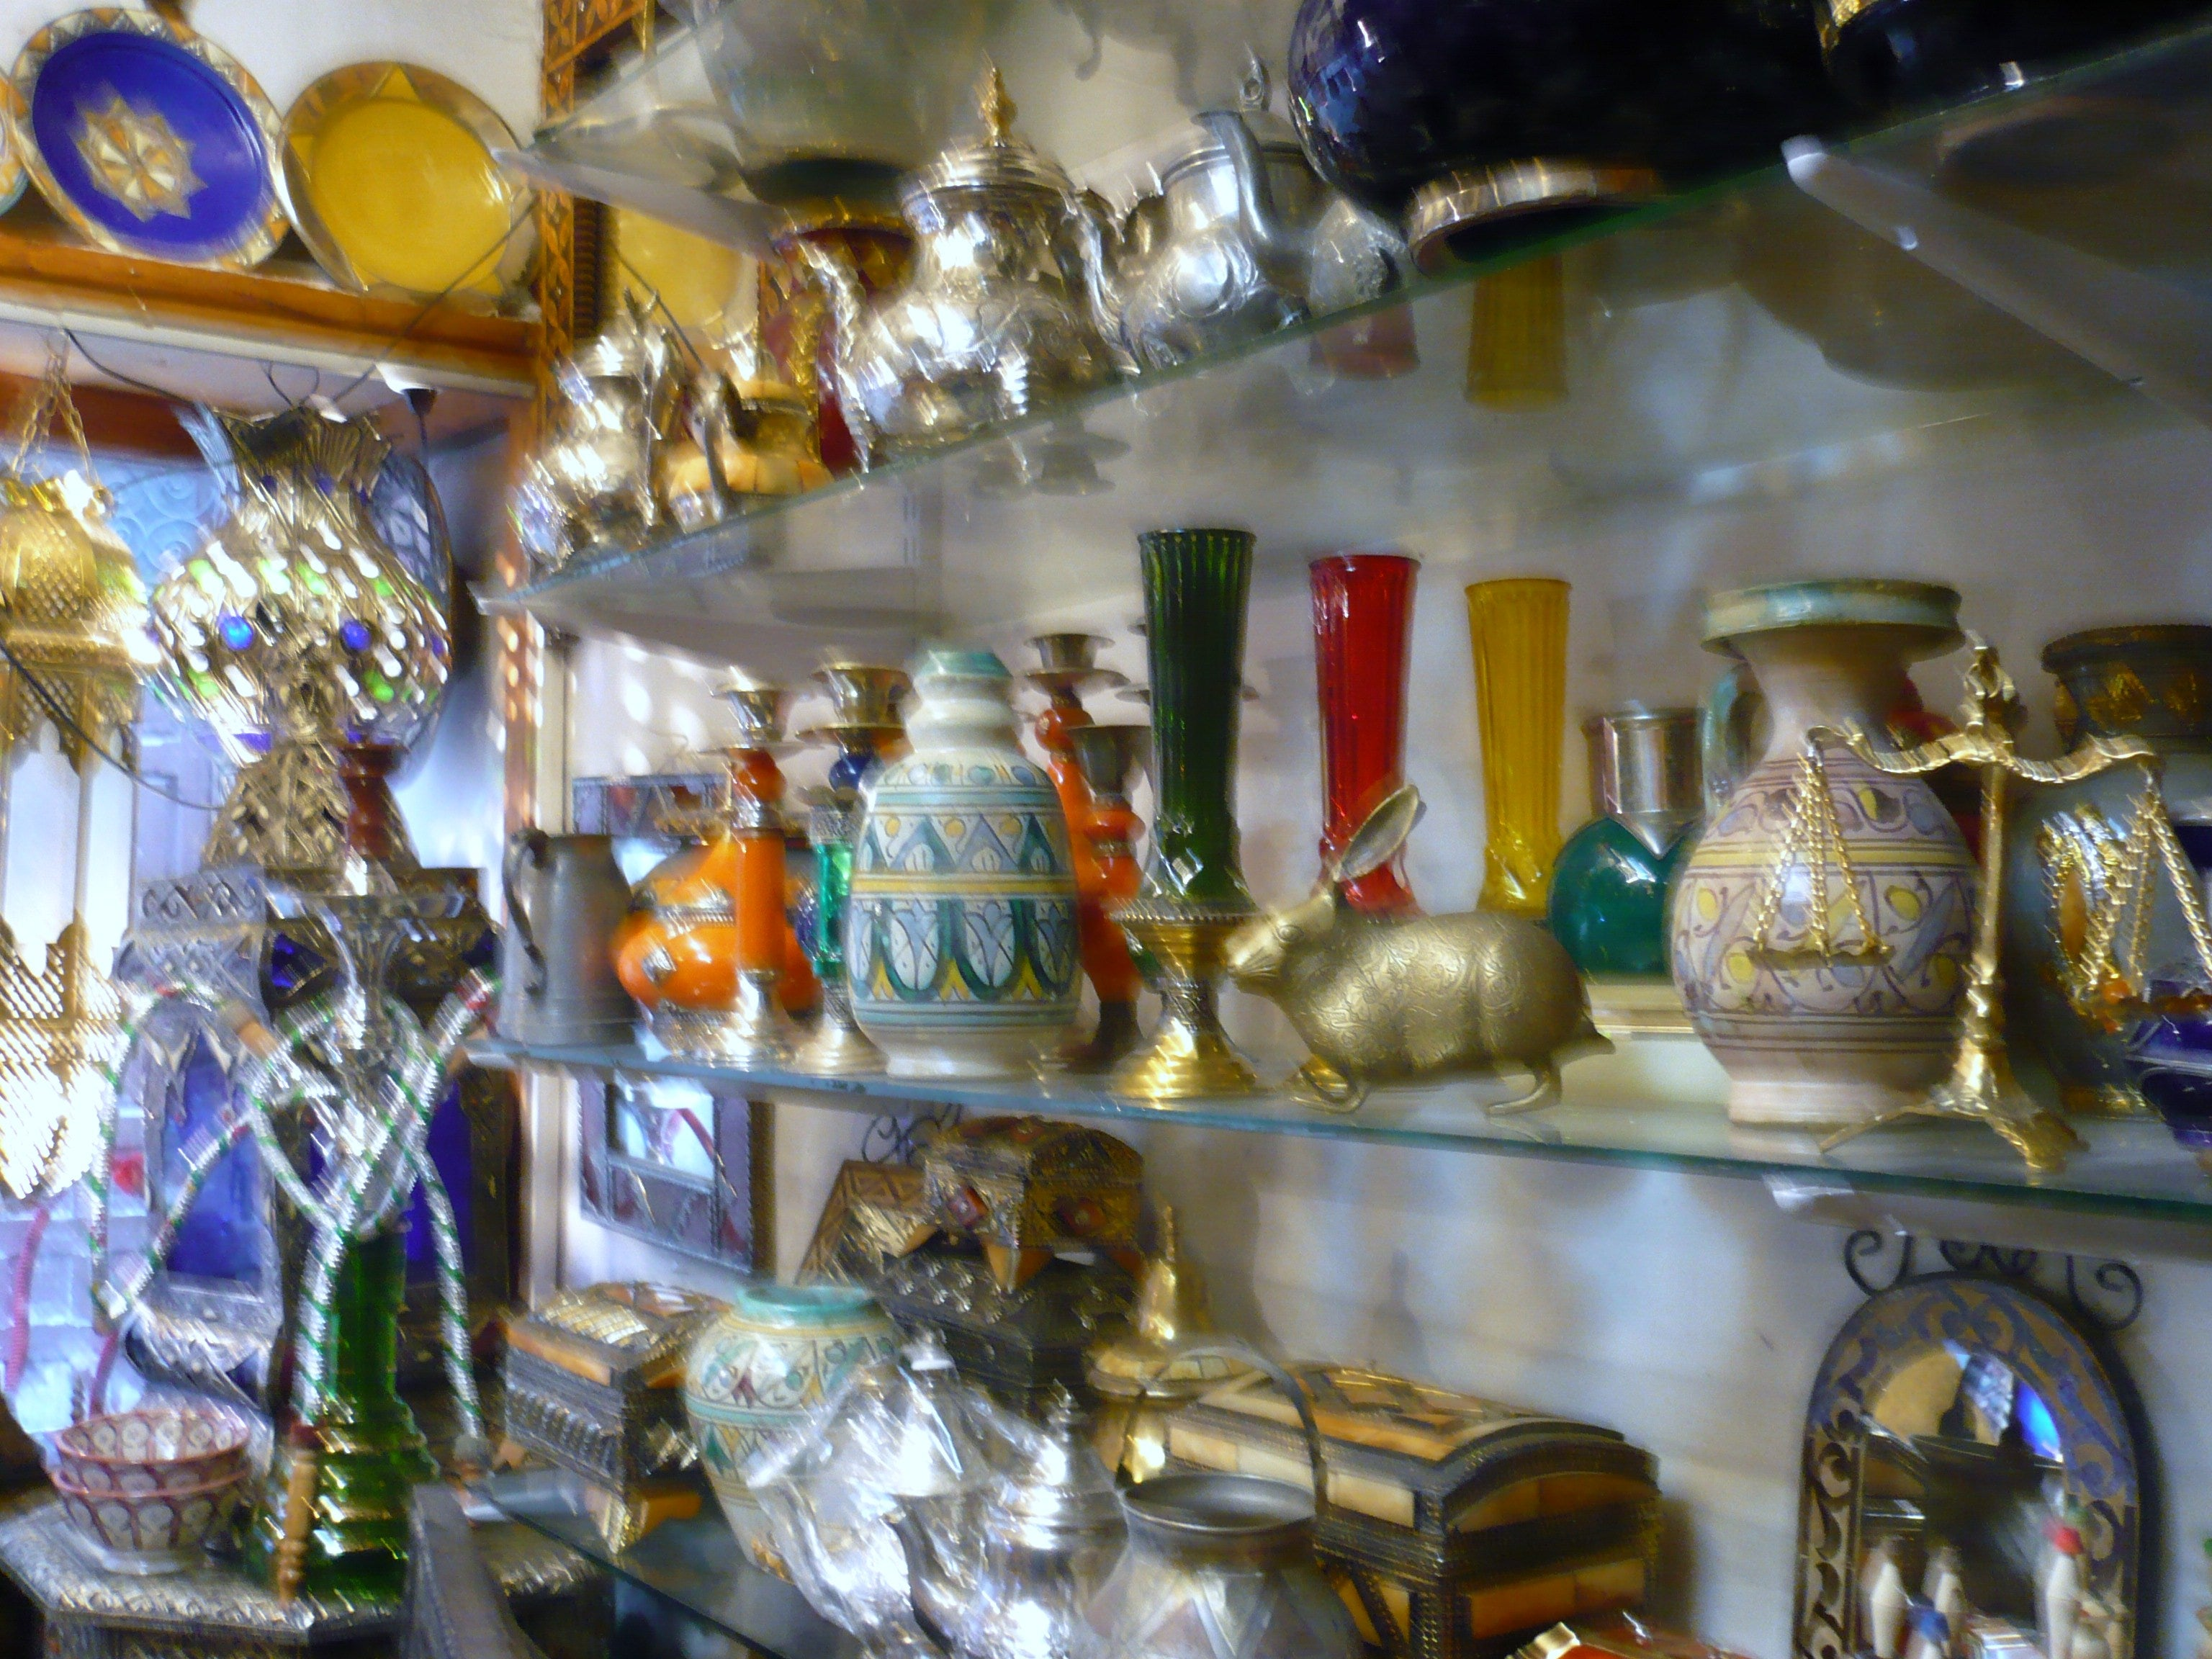 Al Kasaba: Arab Crafts